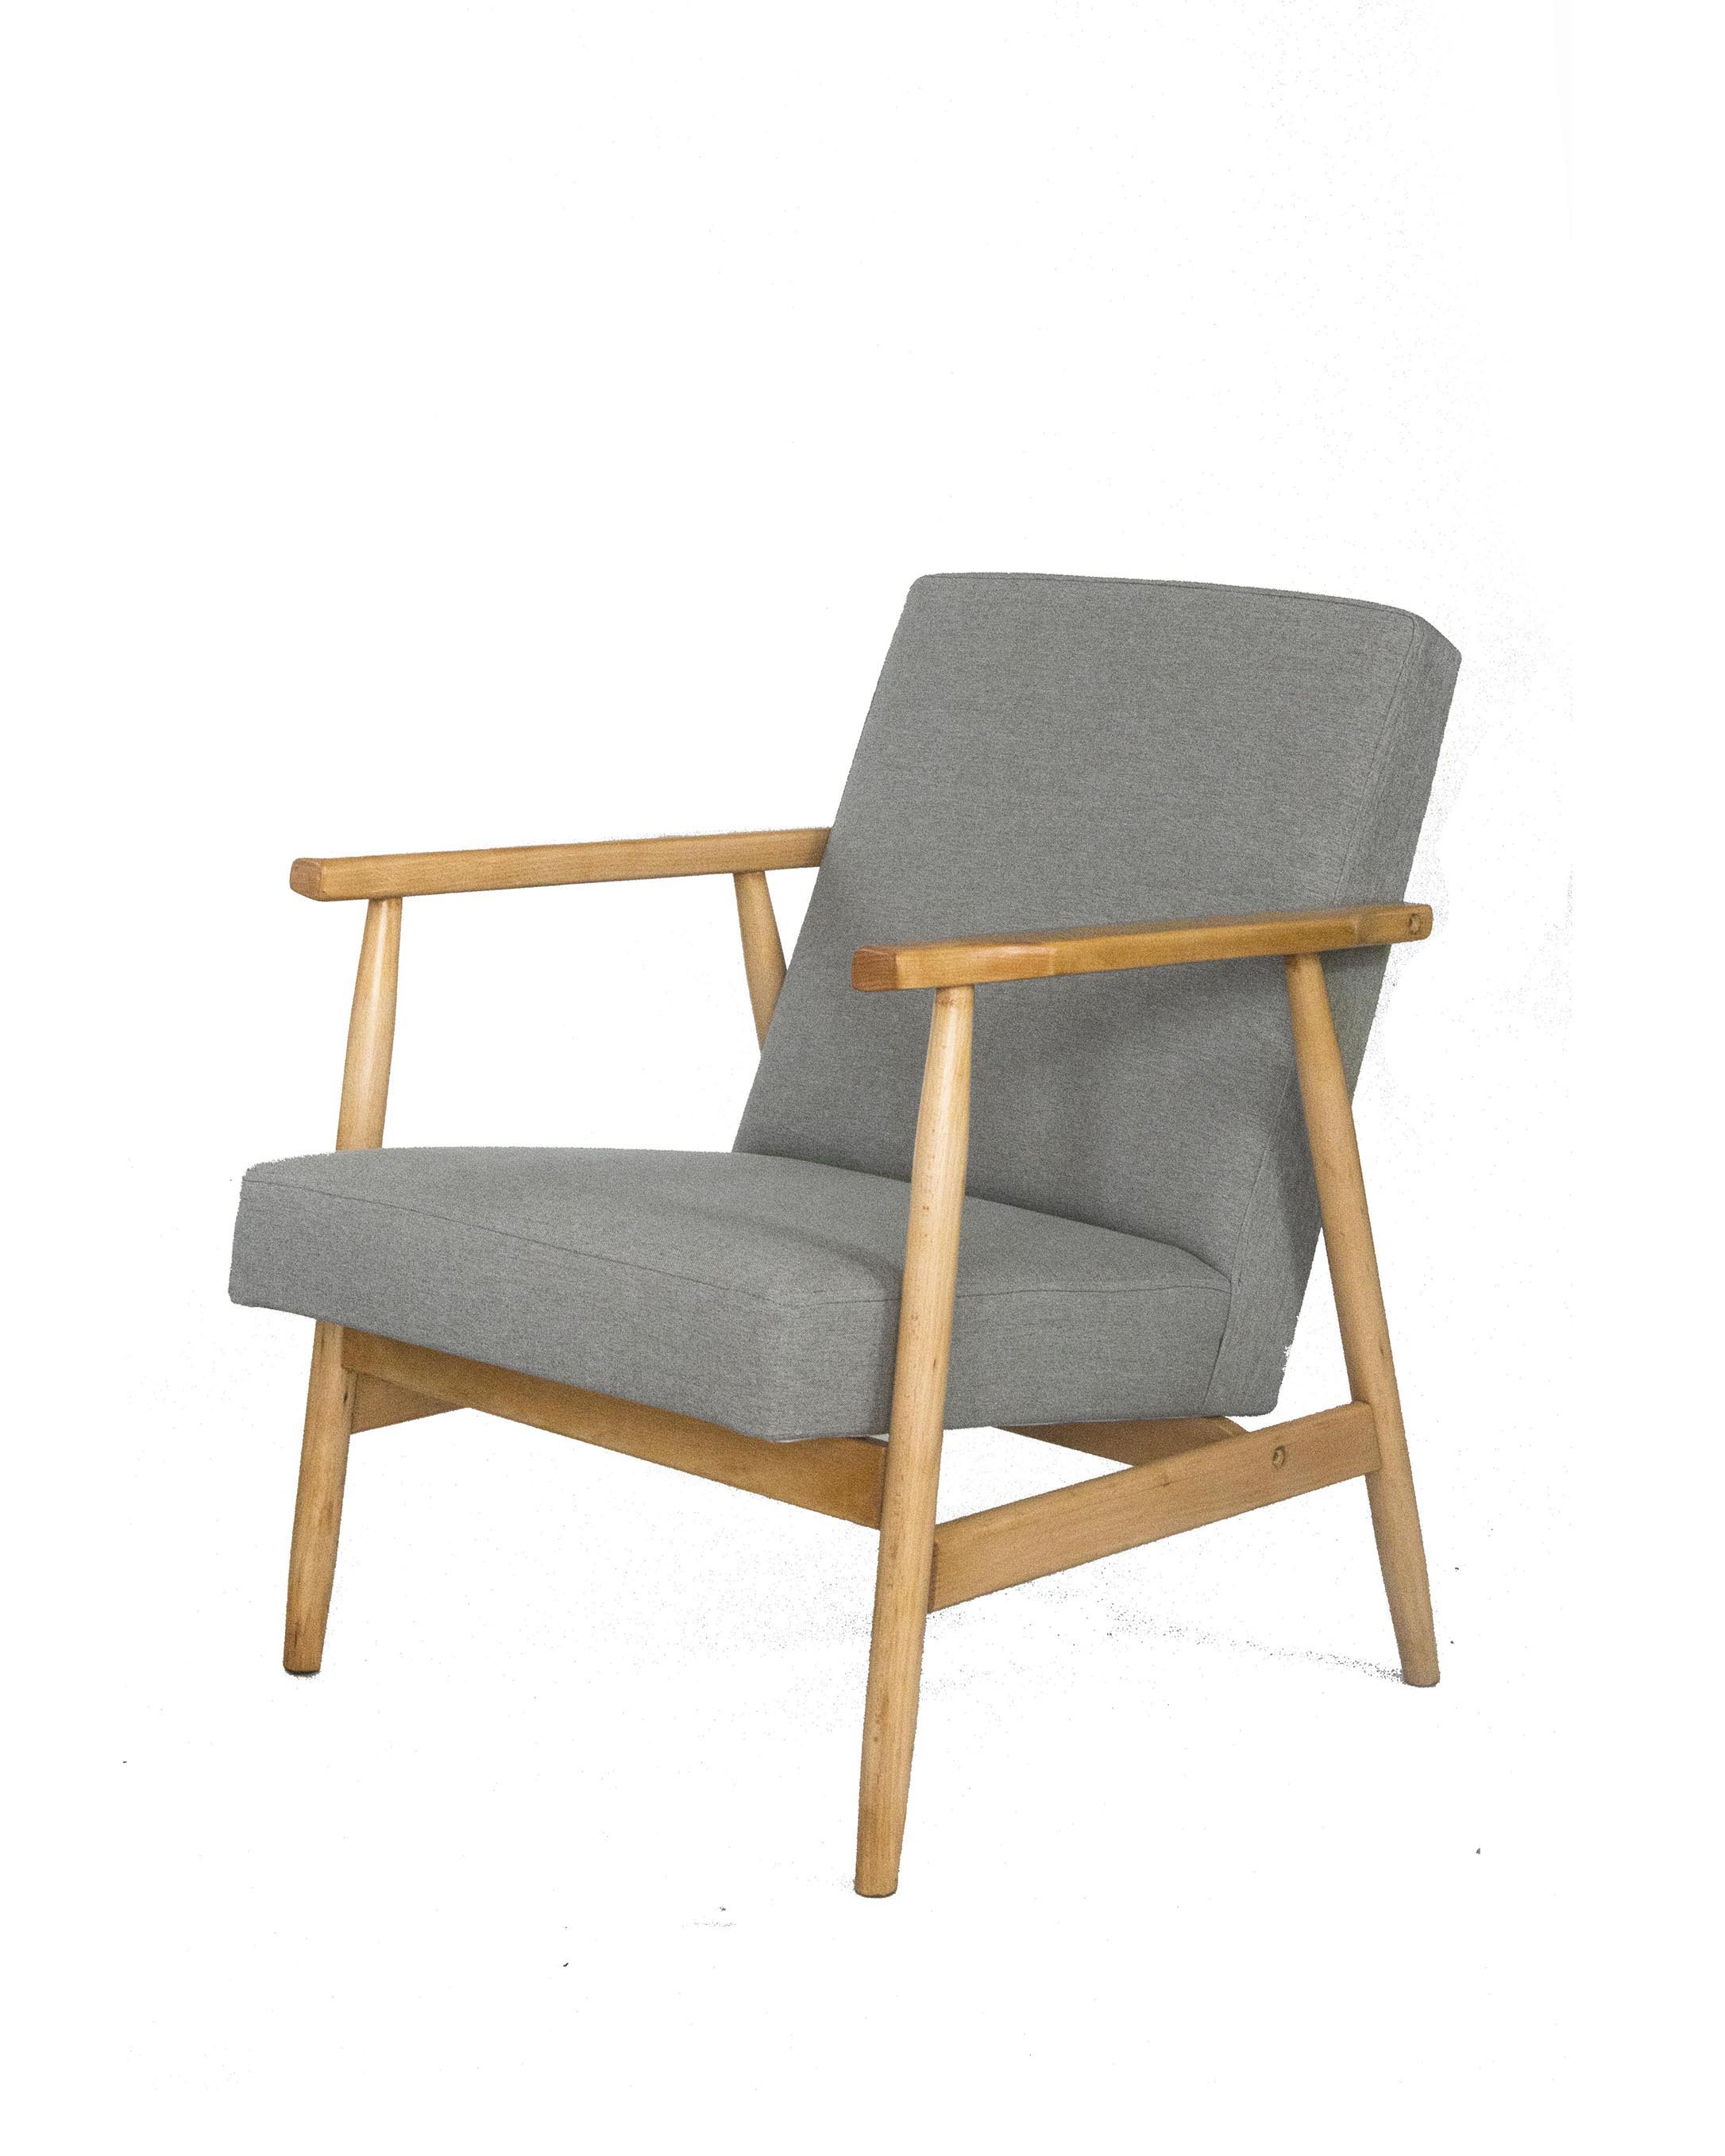 armchairs (11)